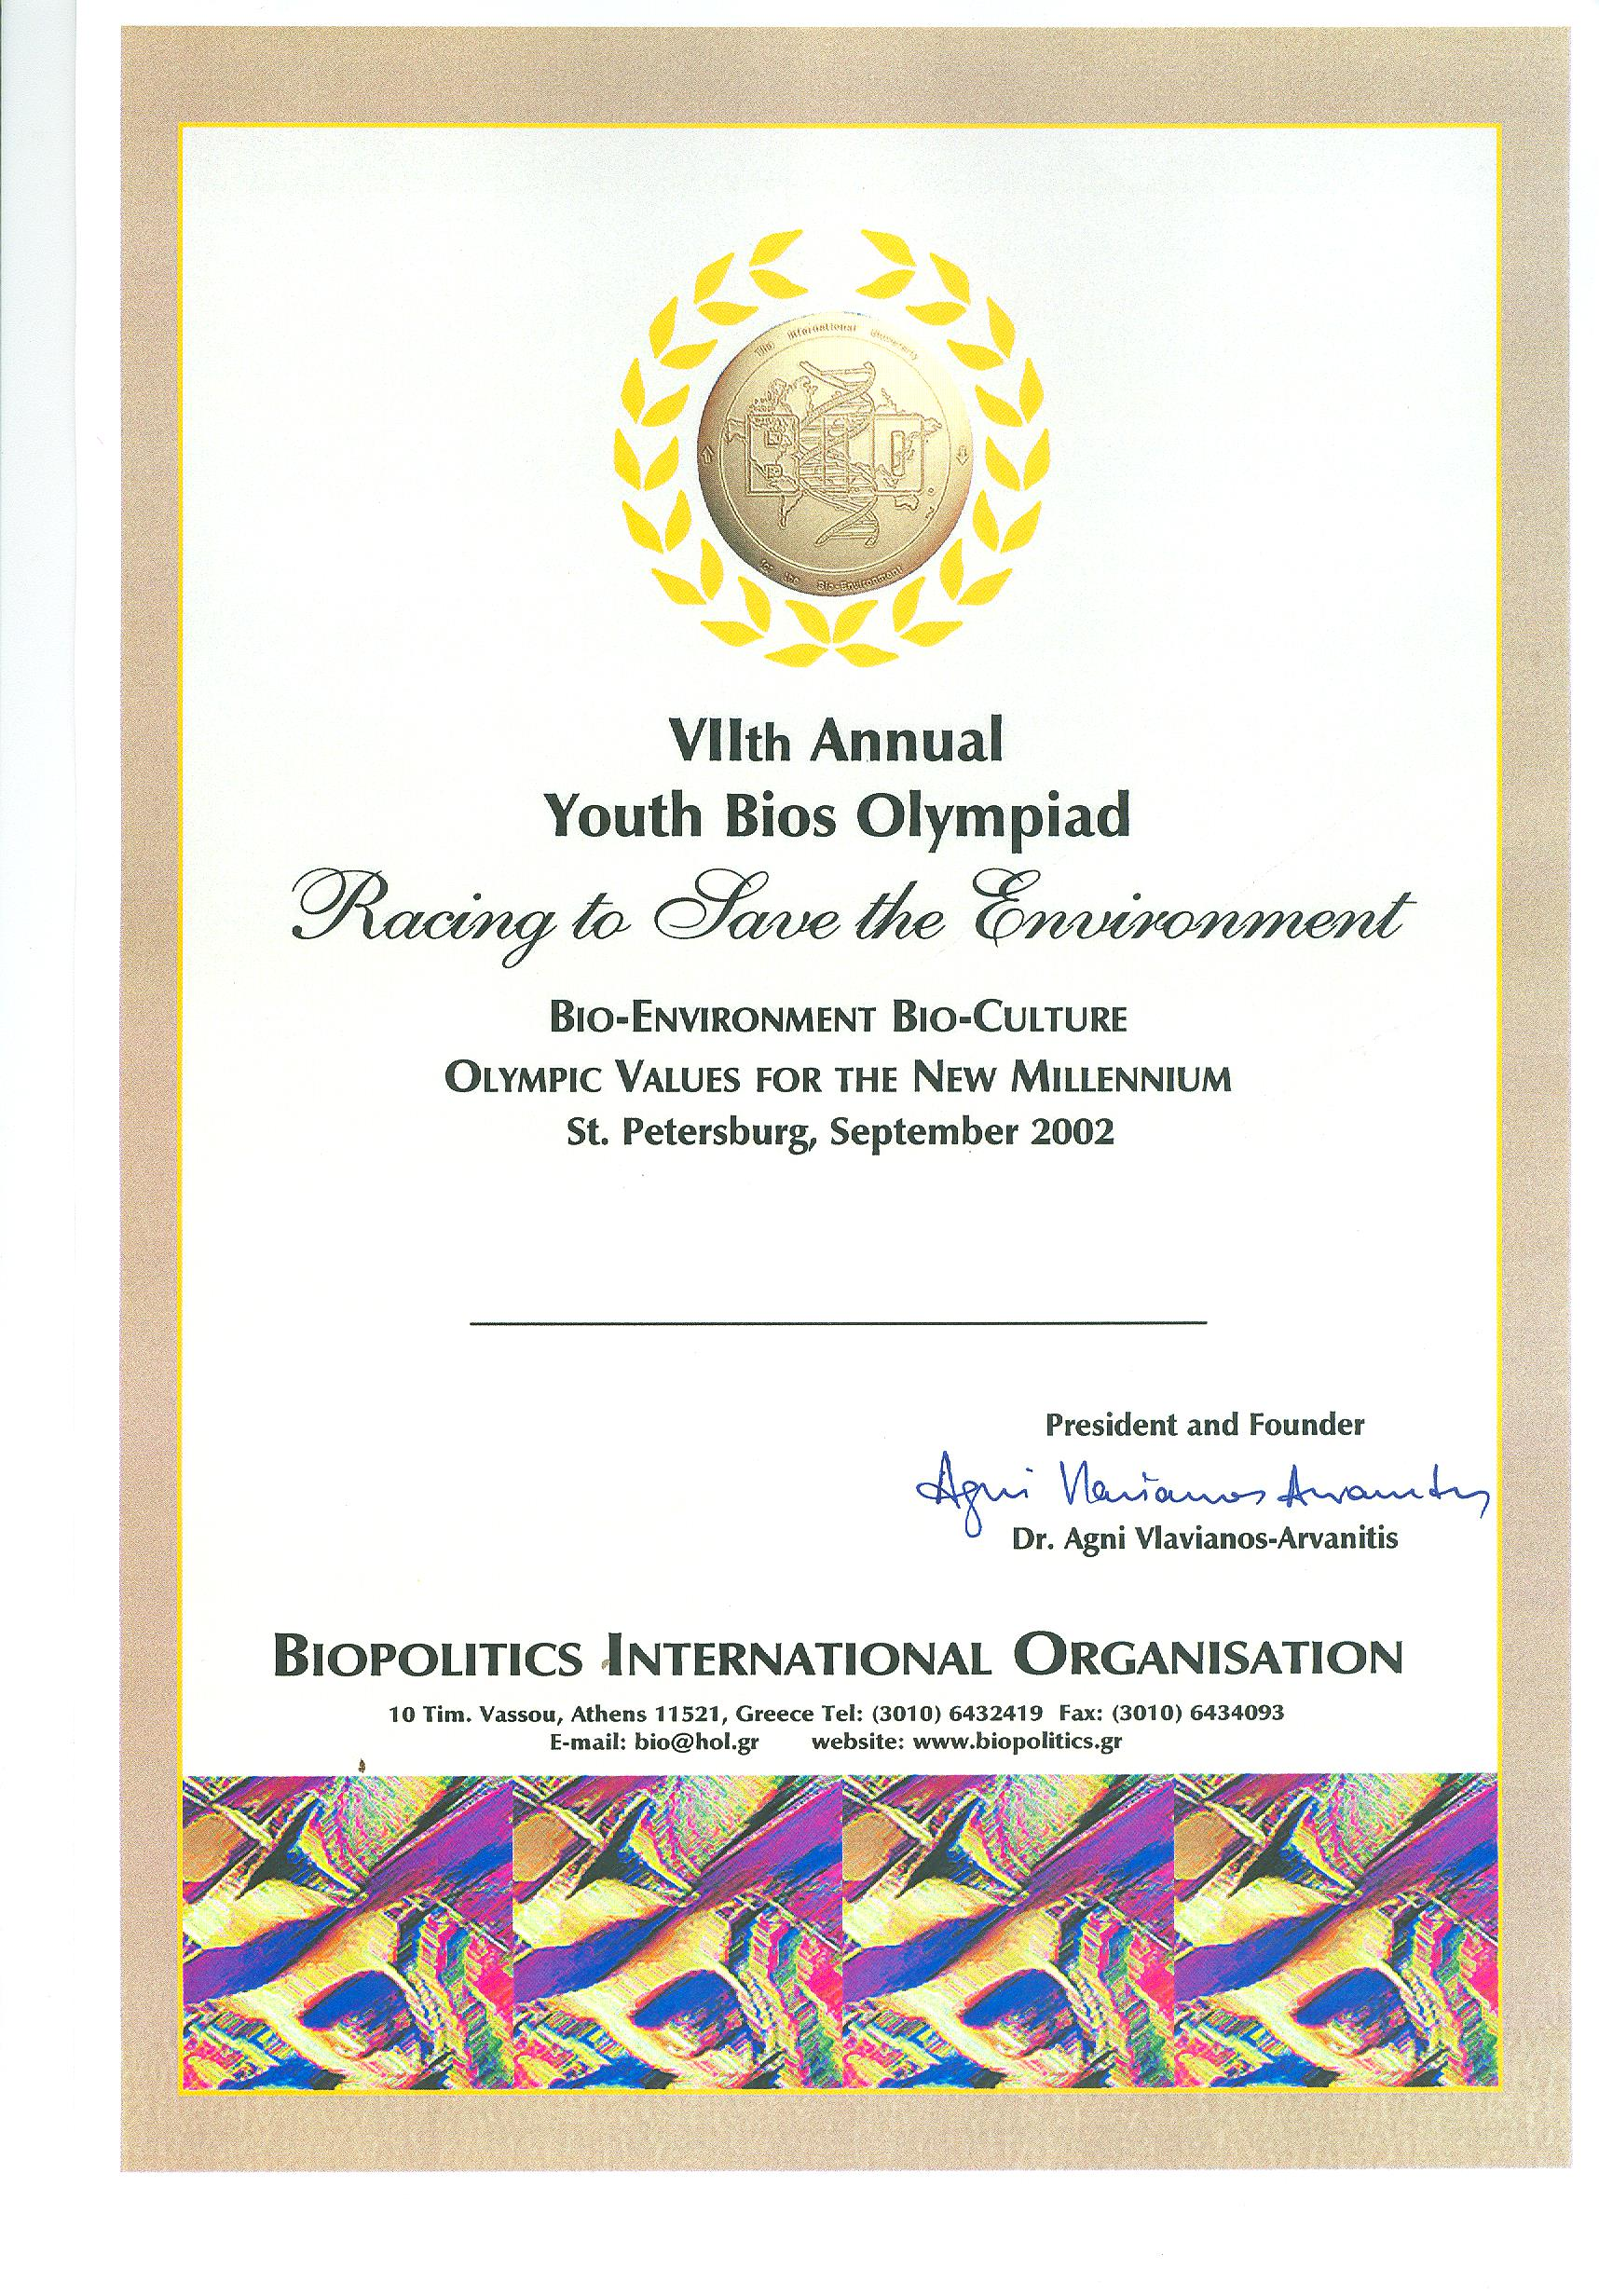 7th Youth Bios Olympiad, St. Petersburg, Russia